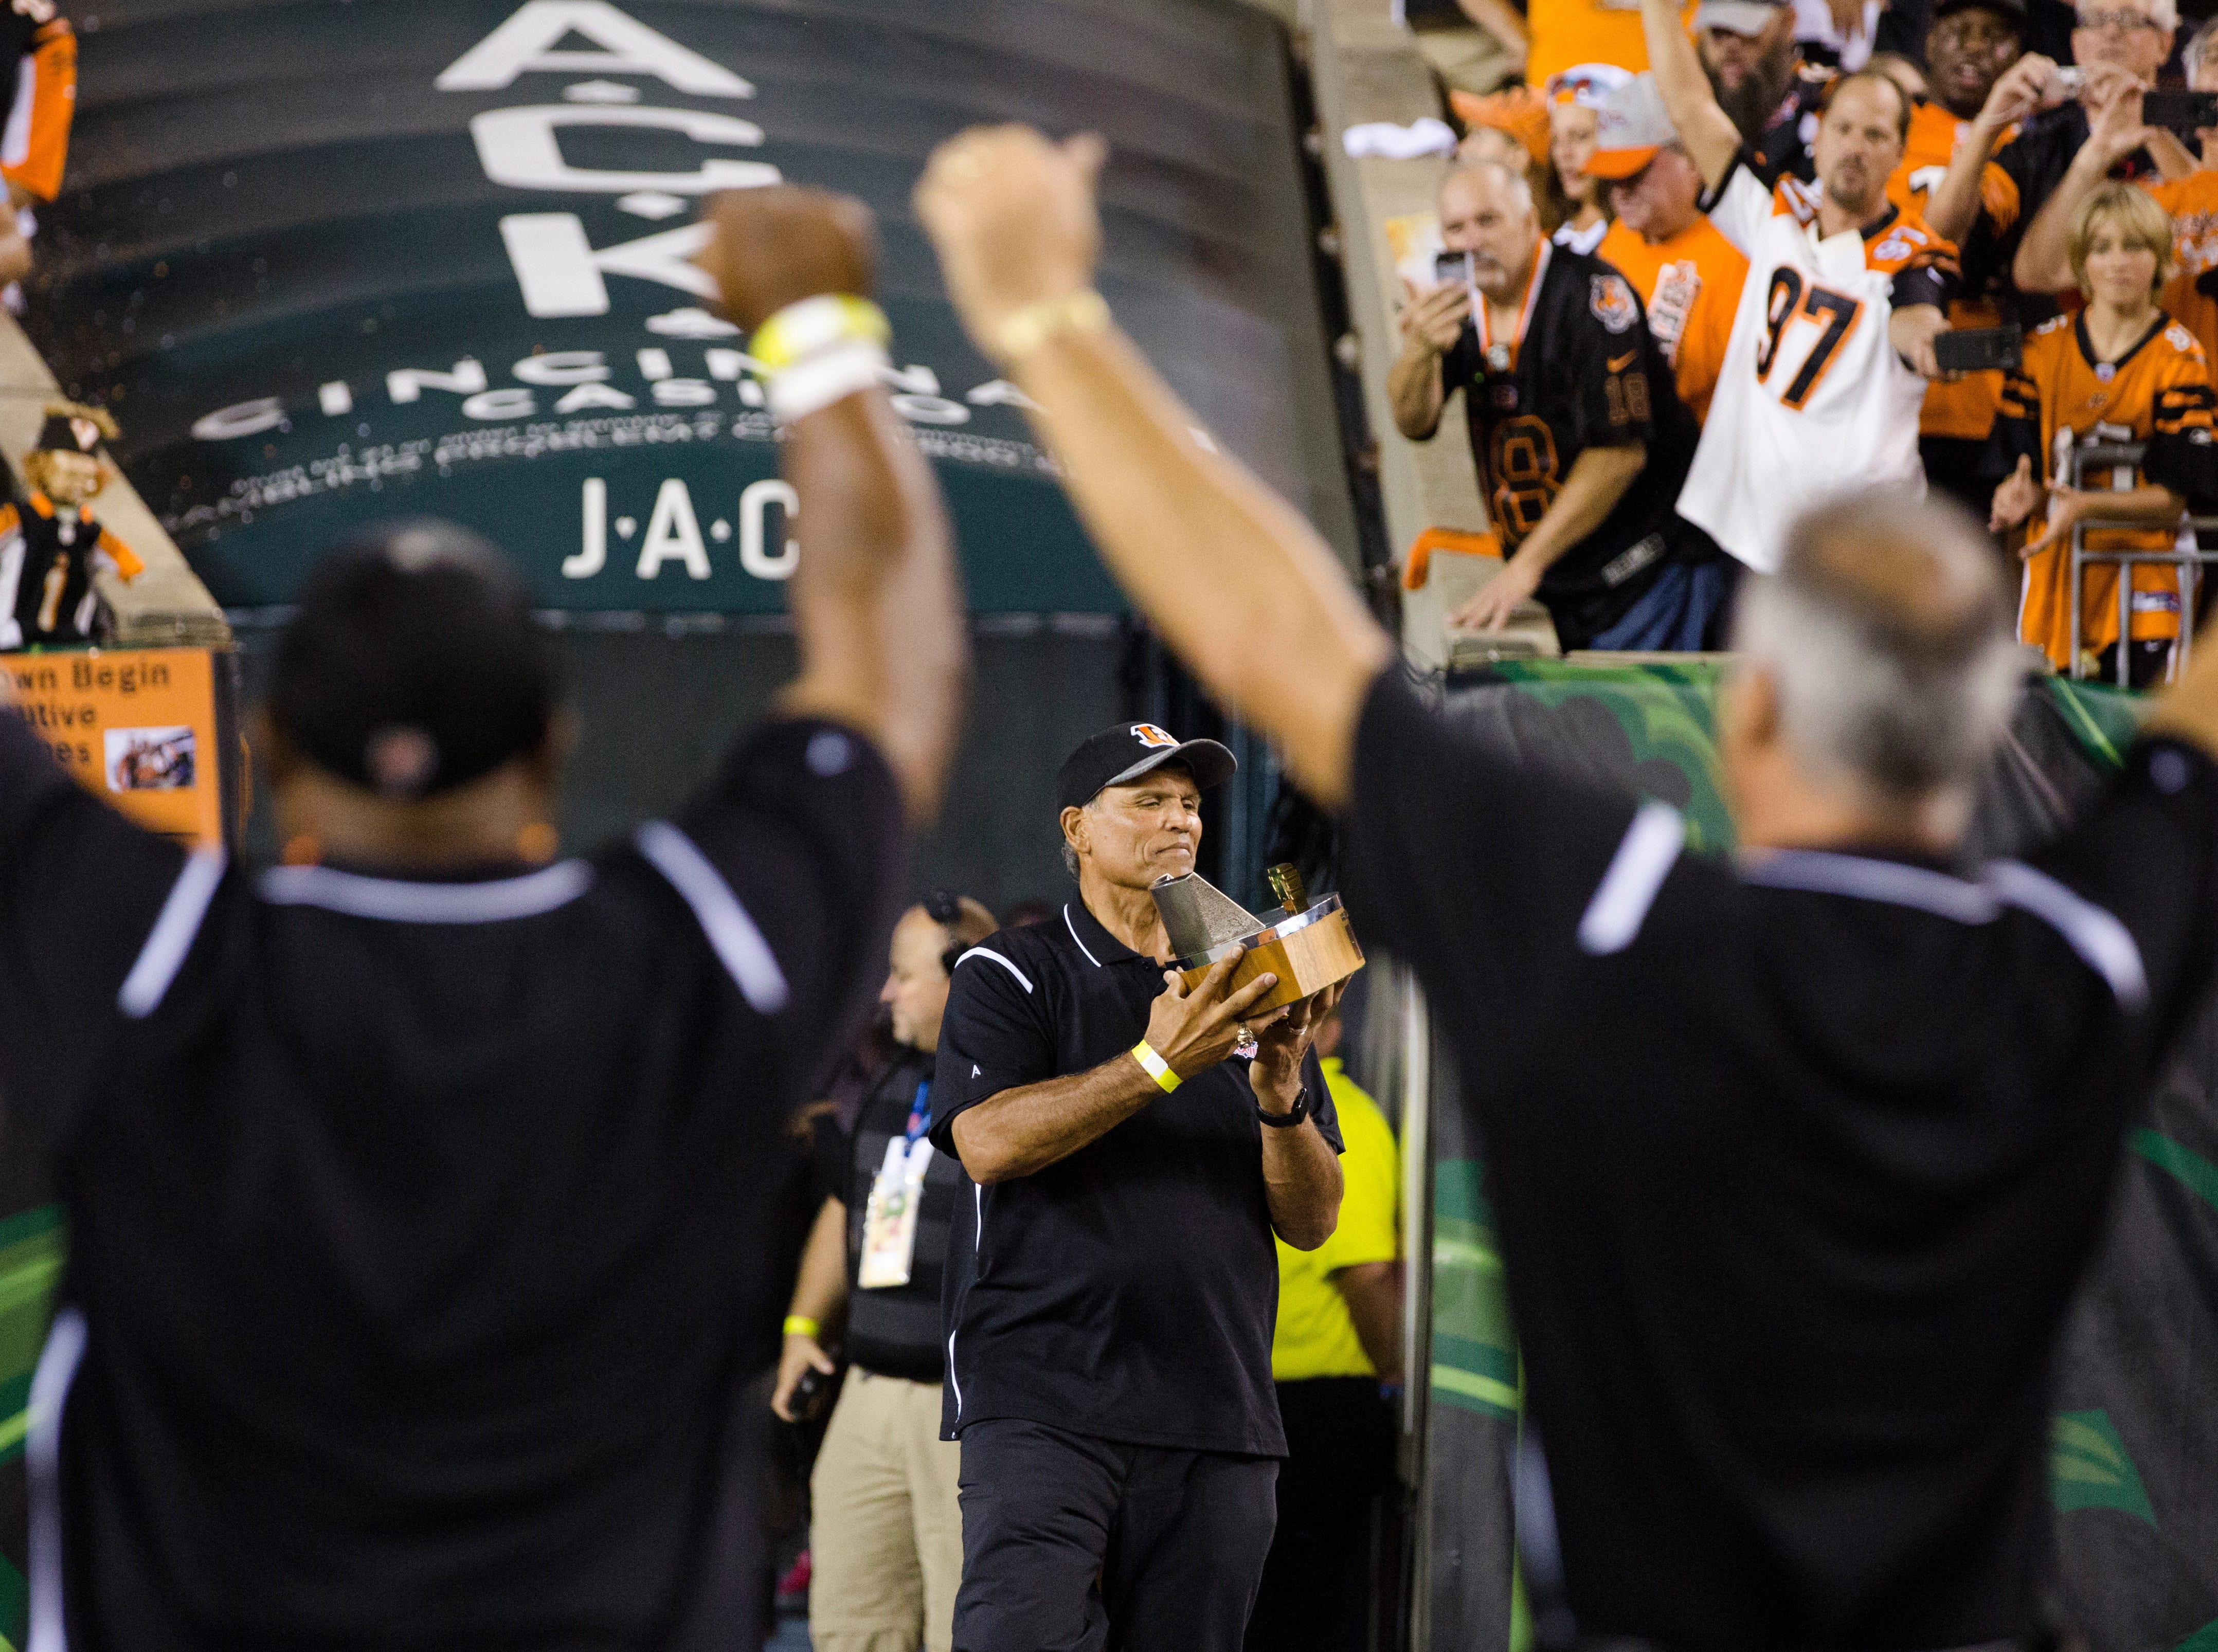 1988 Bengals team member and hall of fame member Anthony Muñoz takes the field as the 1988 Bengals team is honored during the Week 2 NFL game between the Cincinnati Bengals and the Baltimore Ravens, Thursday, Sept. 13, 2018, at Paul Brown Stadium in Cincinnati.